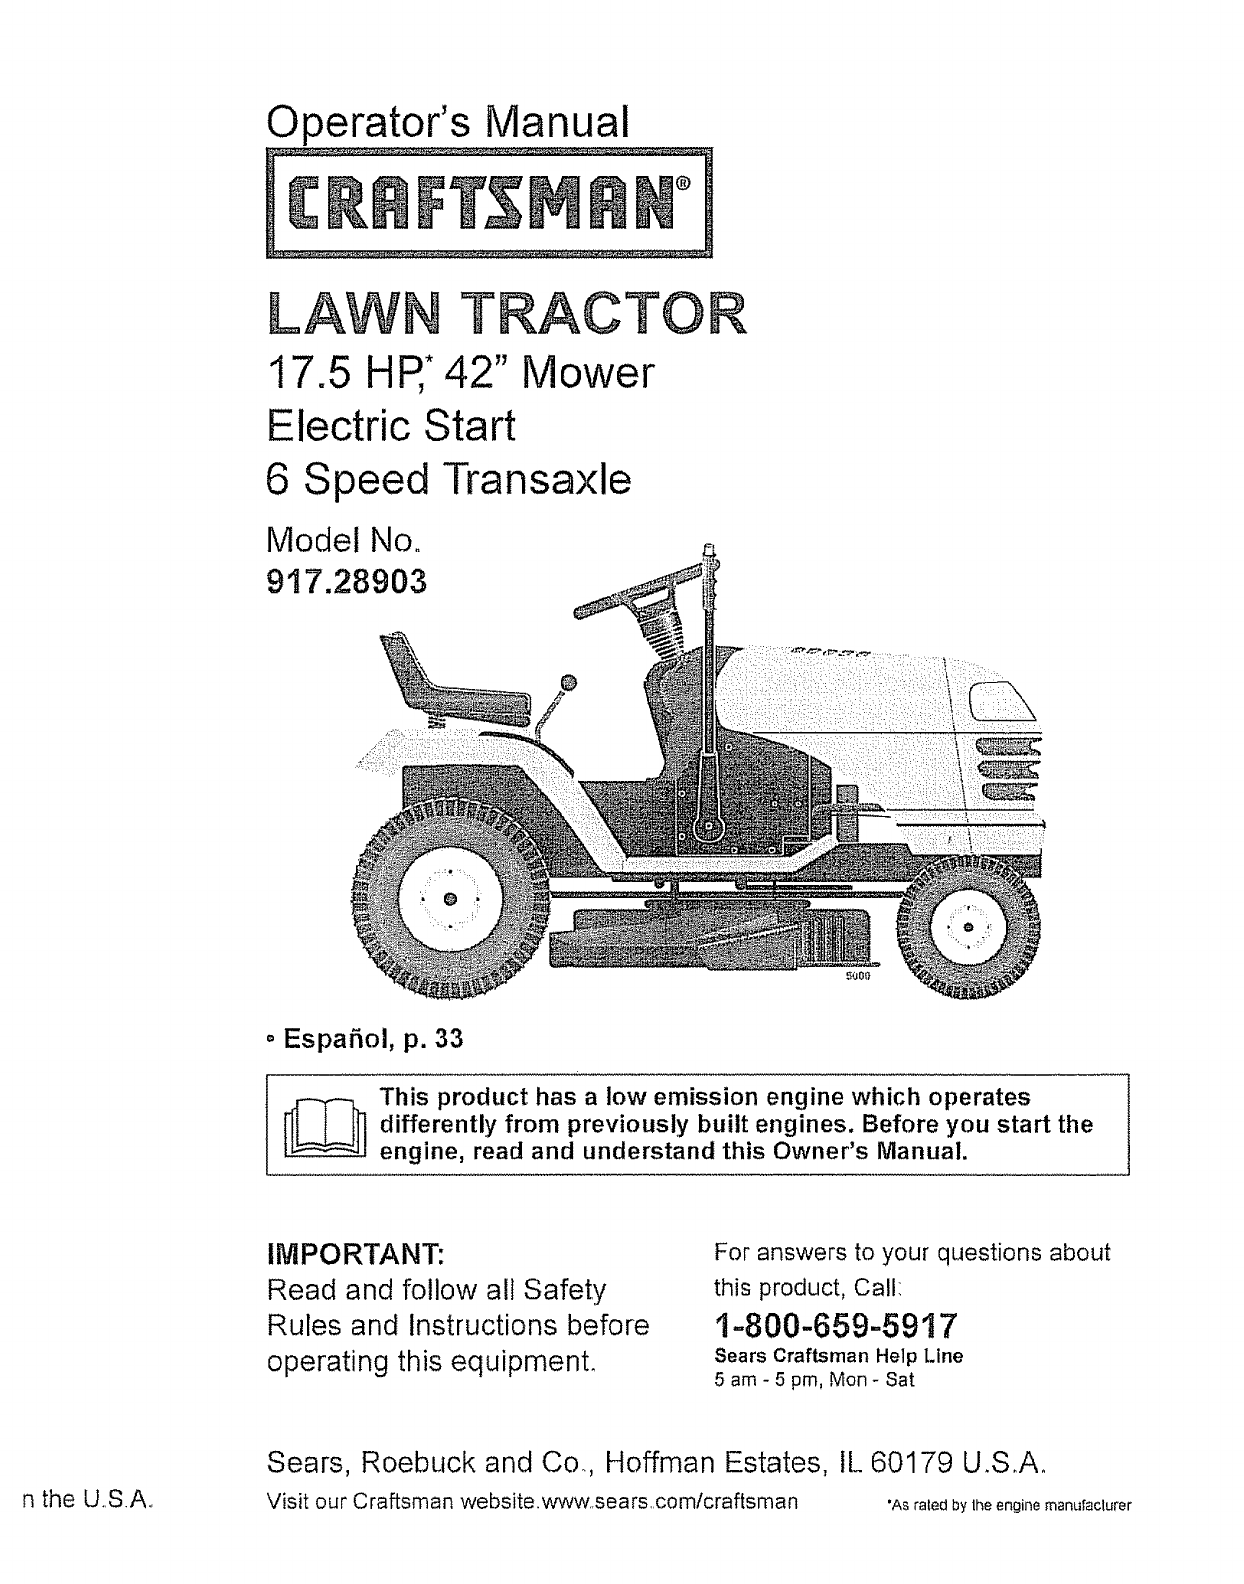 cb1648fd ba11 4ad4 80be 7014e24be2a7 bg1 craftsman riding lawn mower parts model 502254280 sears wiring diagram for sears riding mower at suagrazia.org